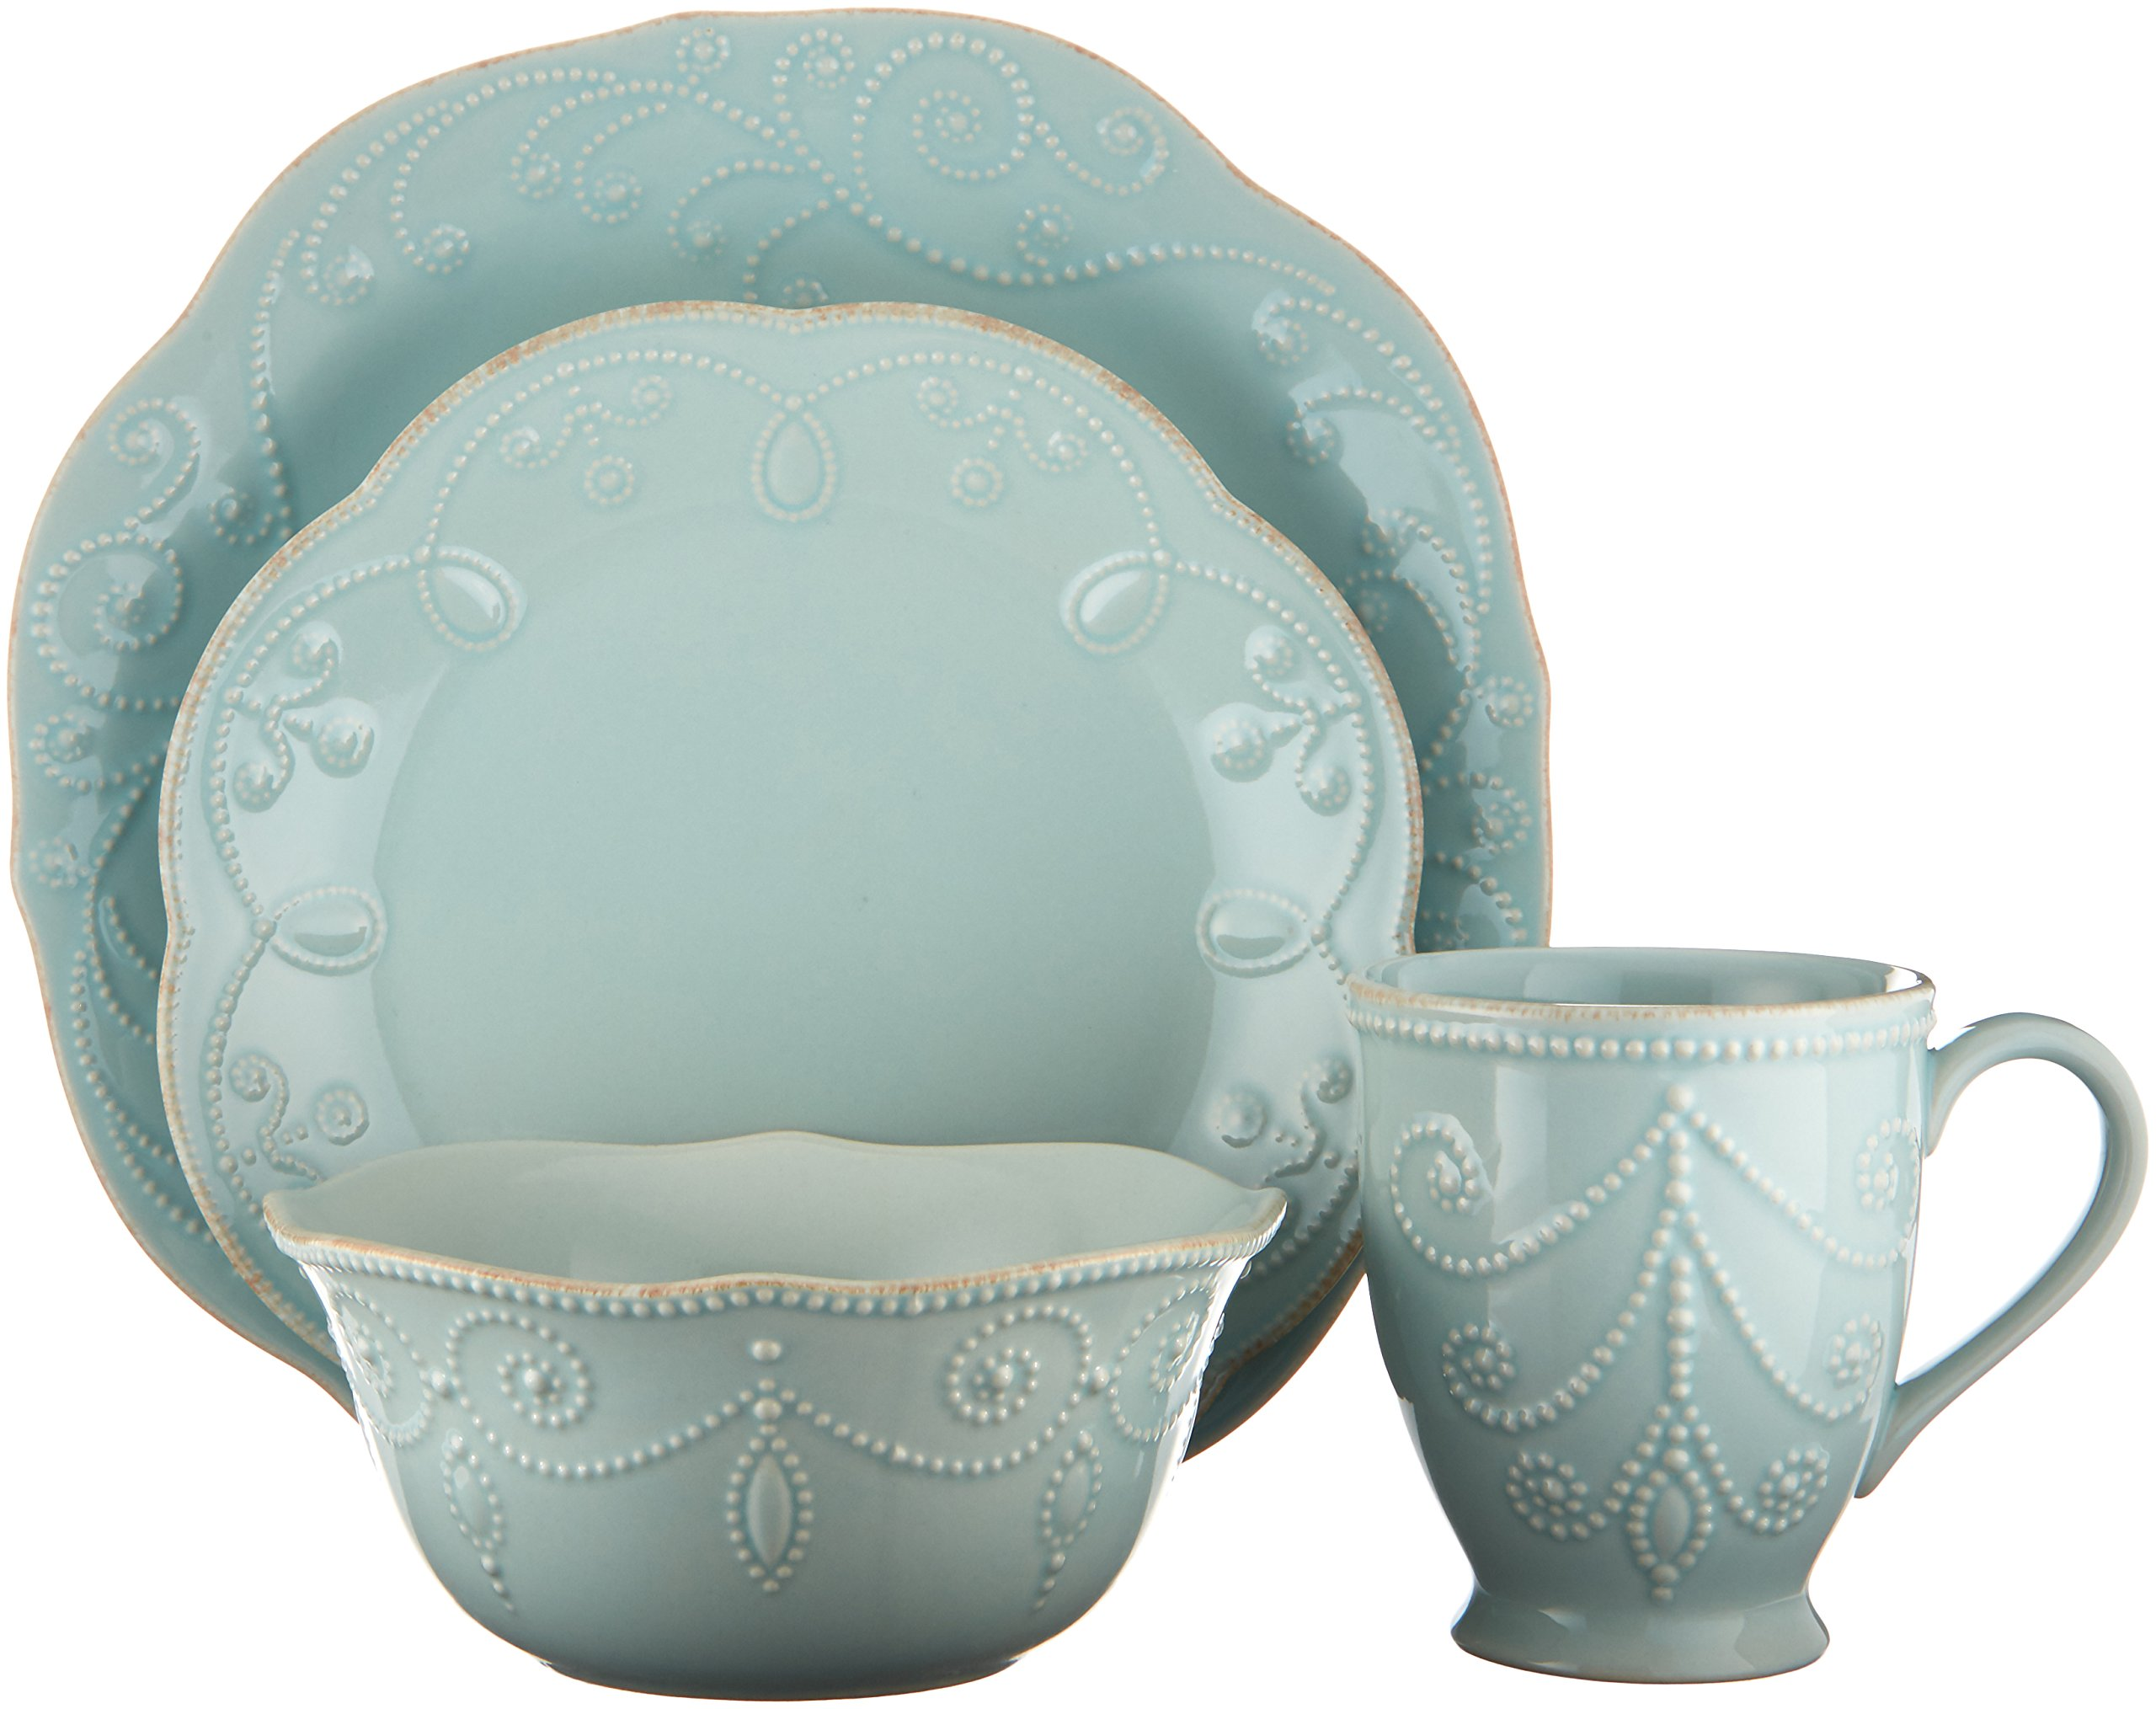 Lenox French Perle 4-Piece Place Setting, Ice Blue - 824431 - 4 colors available   white, ice blue, pistachio and violet Made of durable stoneware Dishwasher & Microwave Safe - kitchen-tabletop, kitchen-dining-room, dinnerware-sets - 81hsddZqWaL -